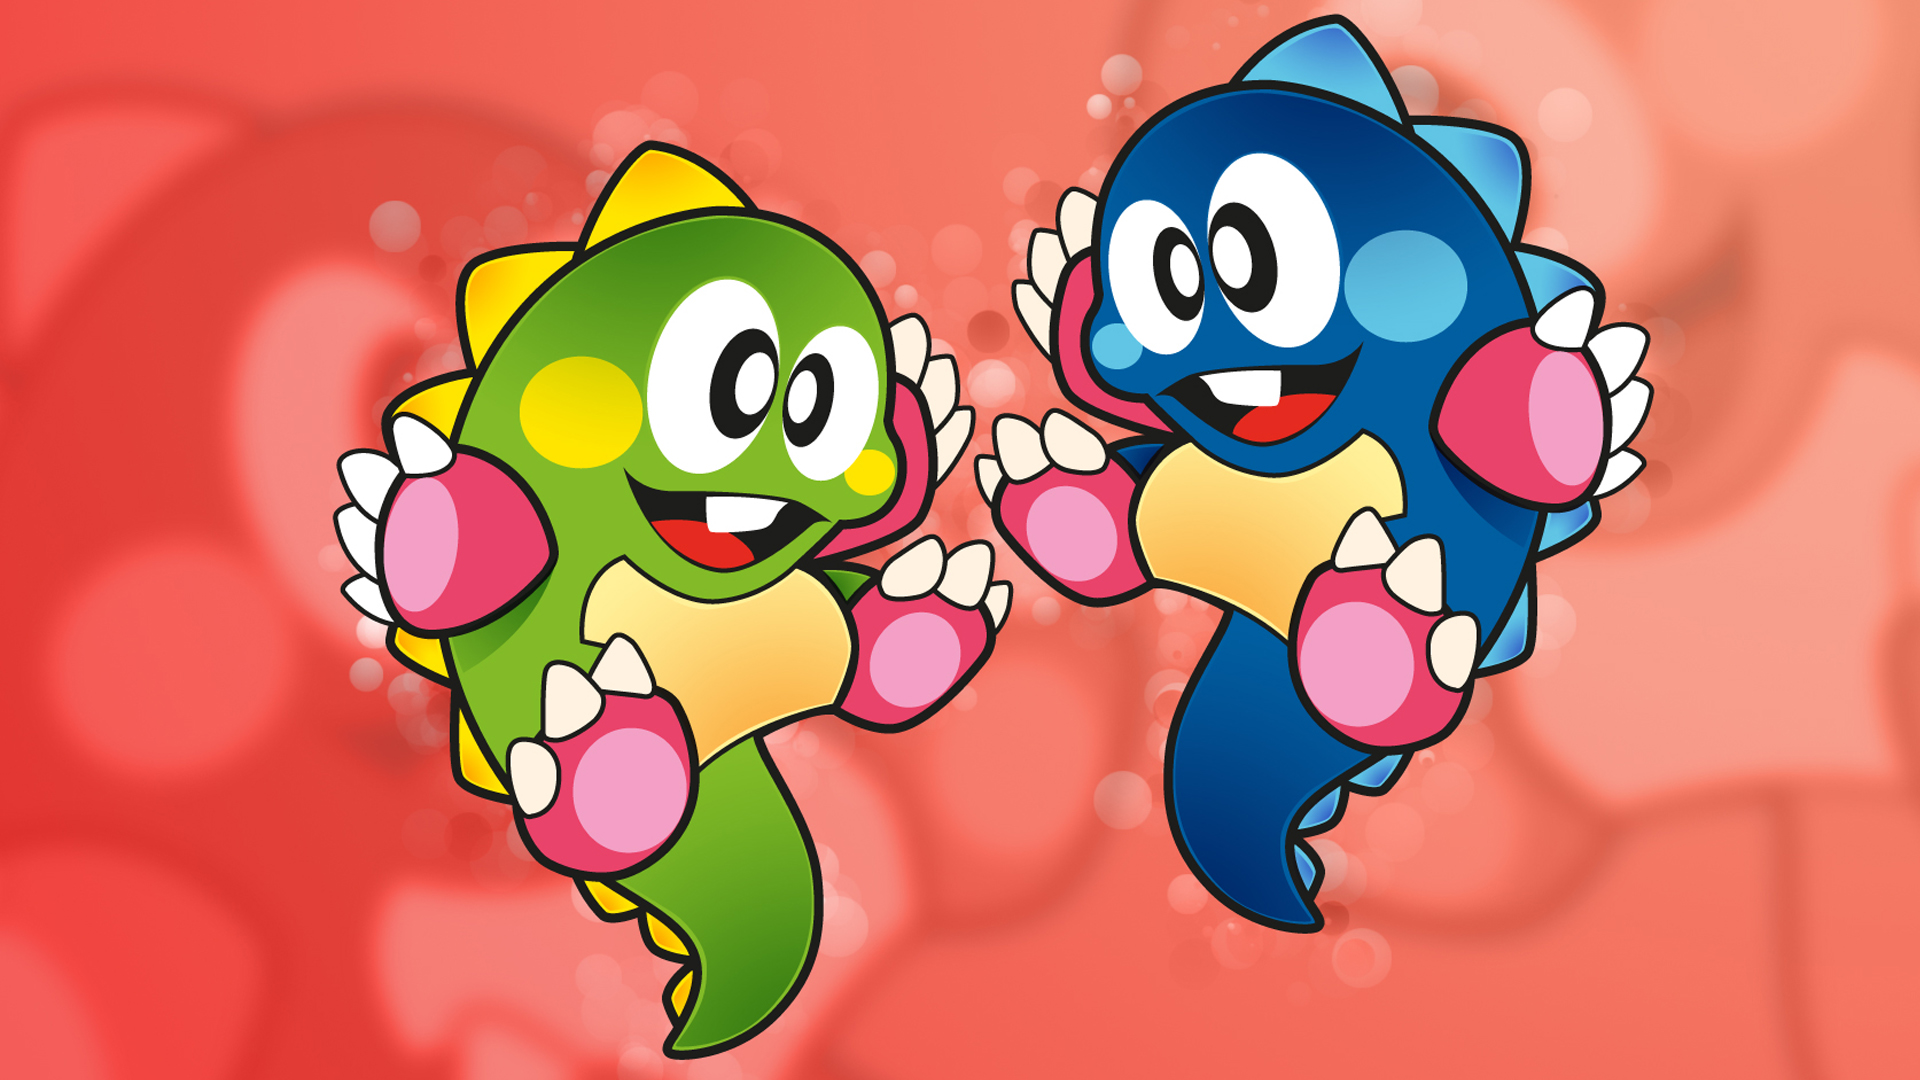 3d Logo Wallpaper Bubble Bobble Details Launchbox Games Database